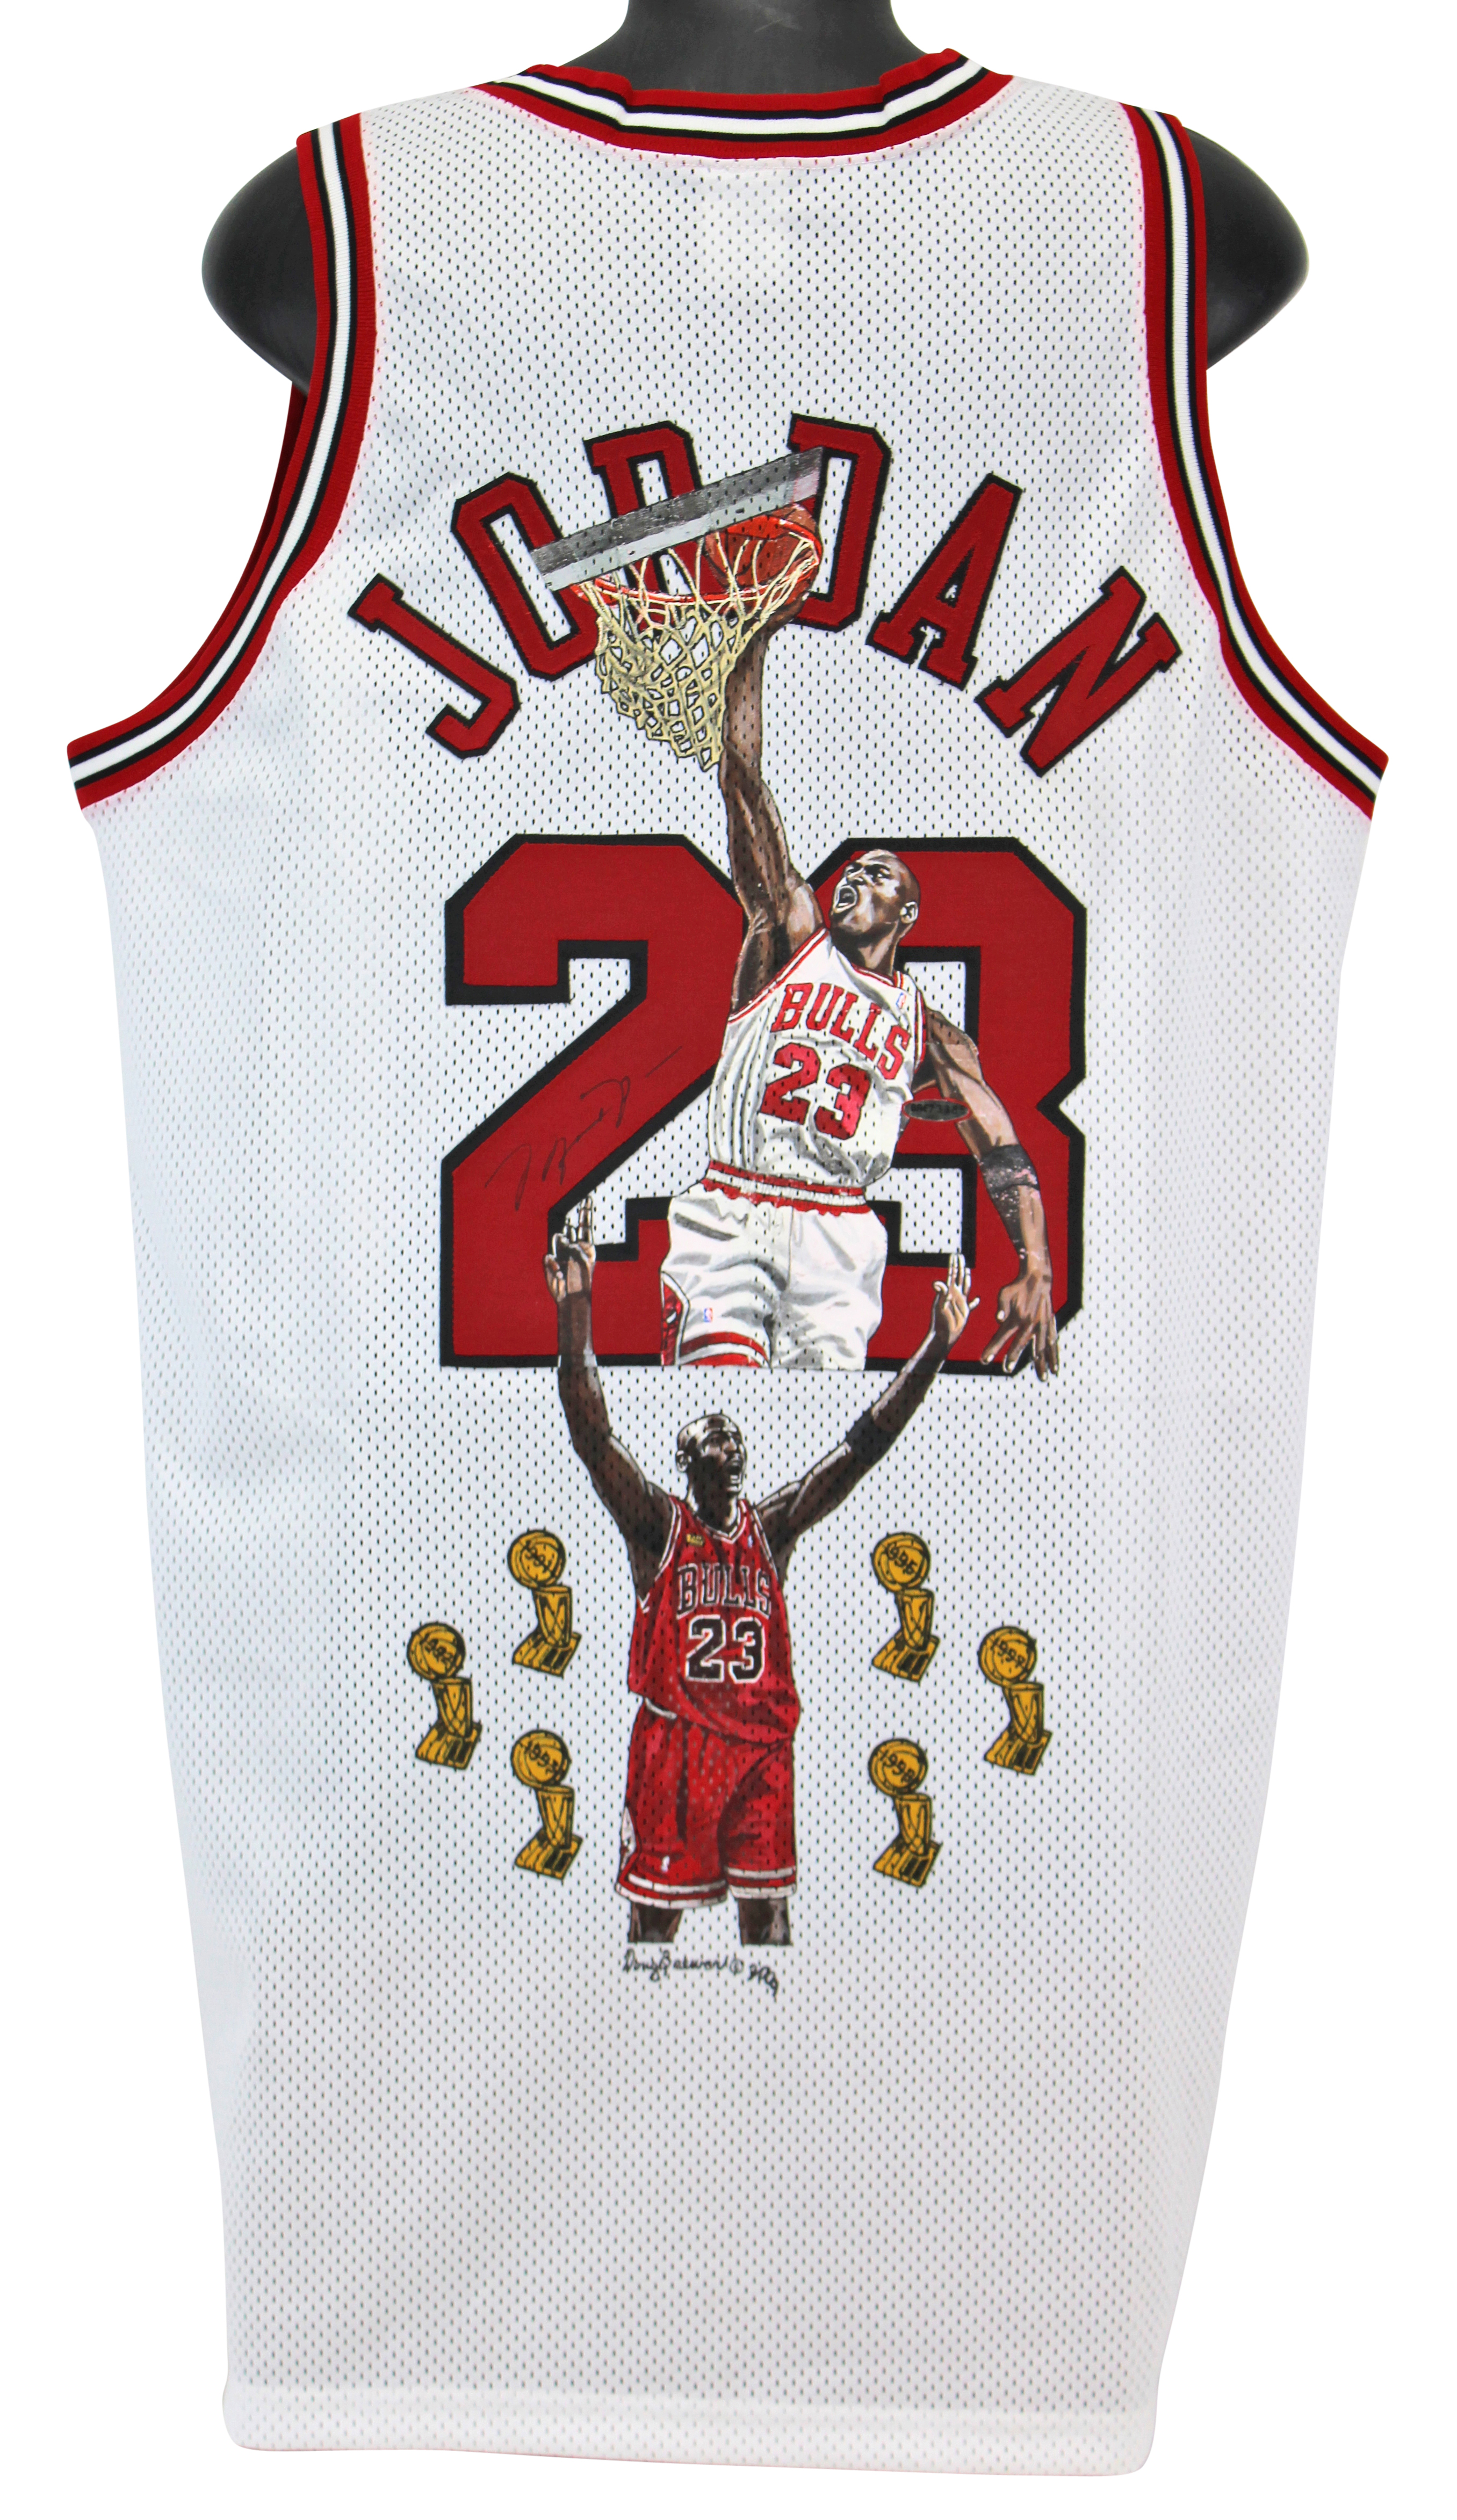 brand new afc67 2caff Bulls Michael Jordan Signed Hand Painted White Nike Jersey UDA #BAE73385 |  eBay